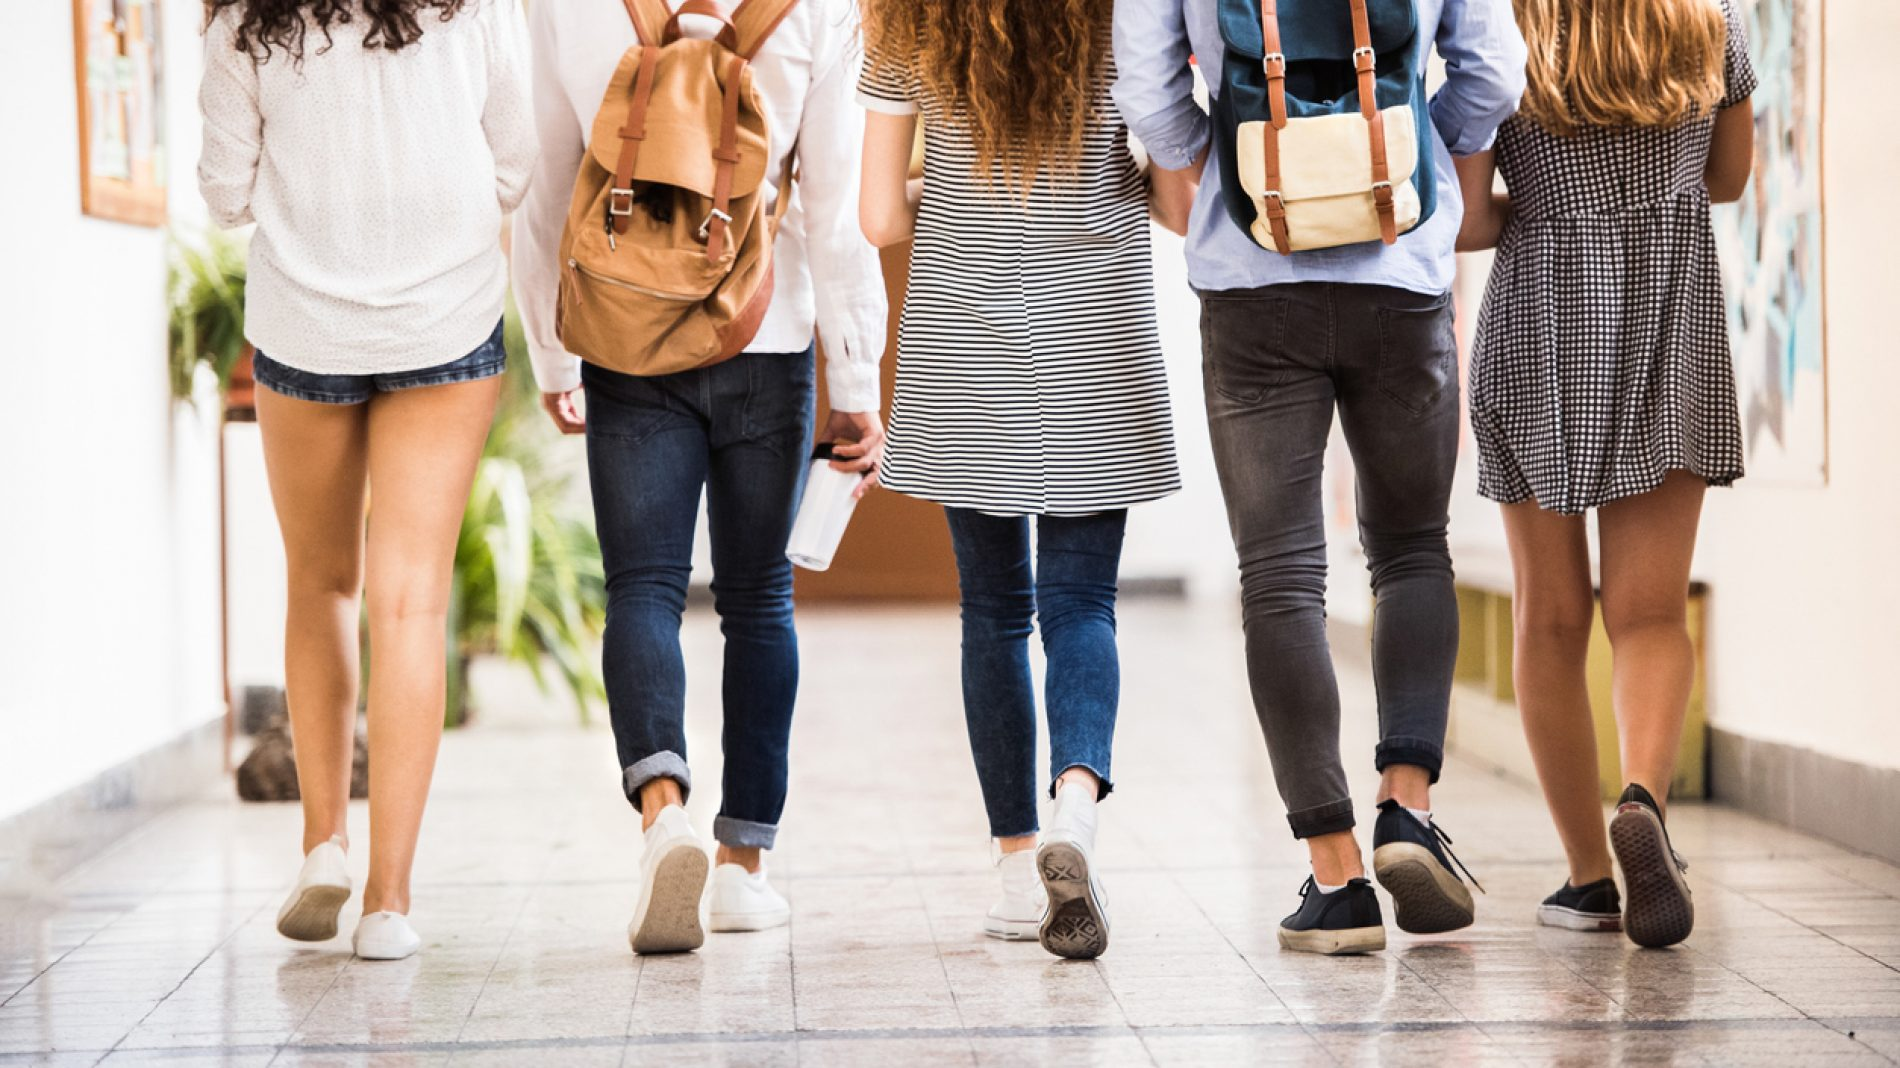 Group of students walking together